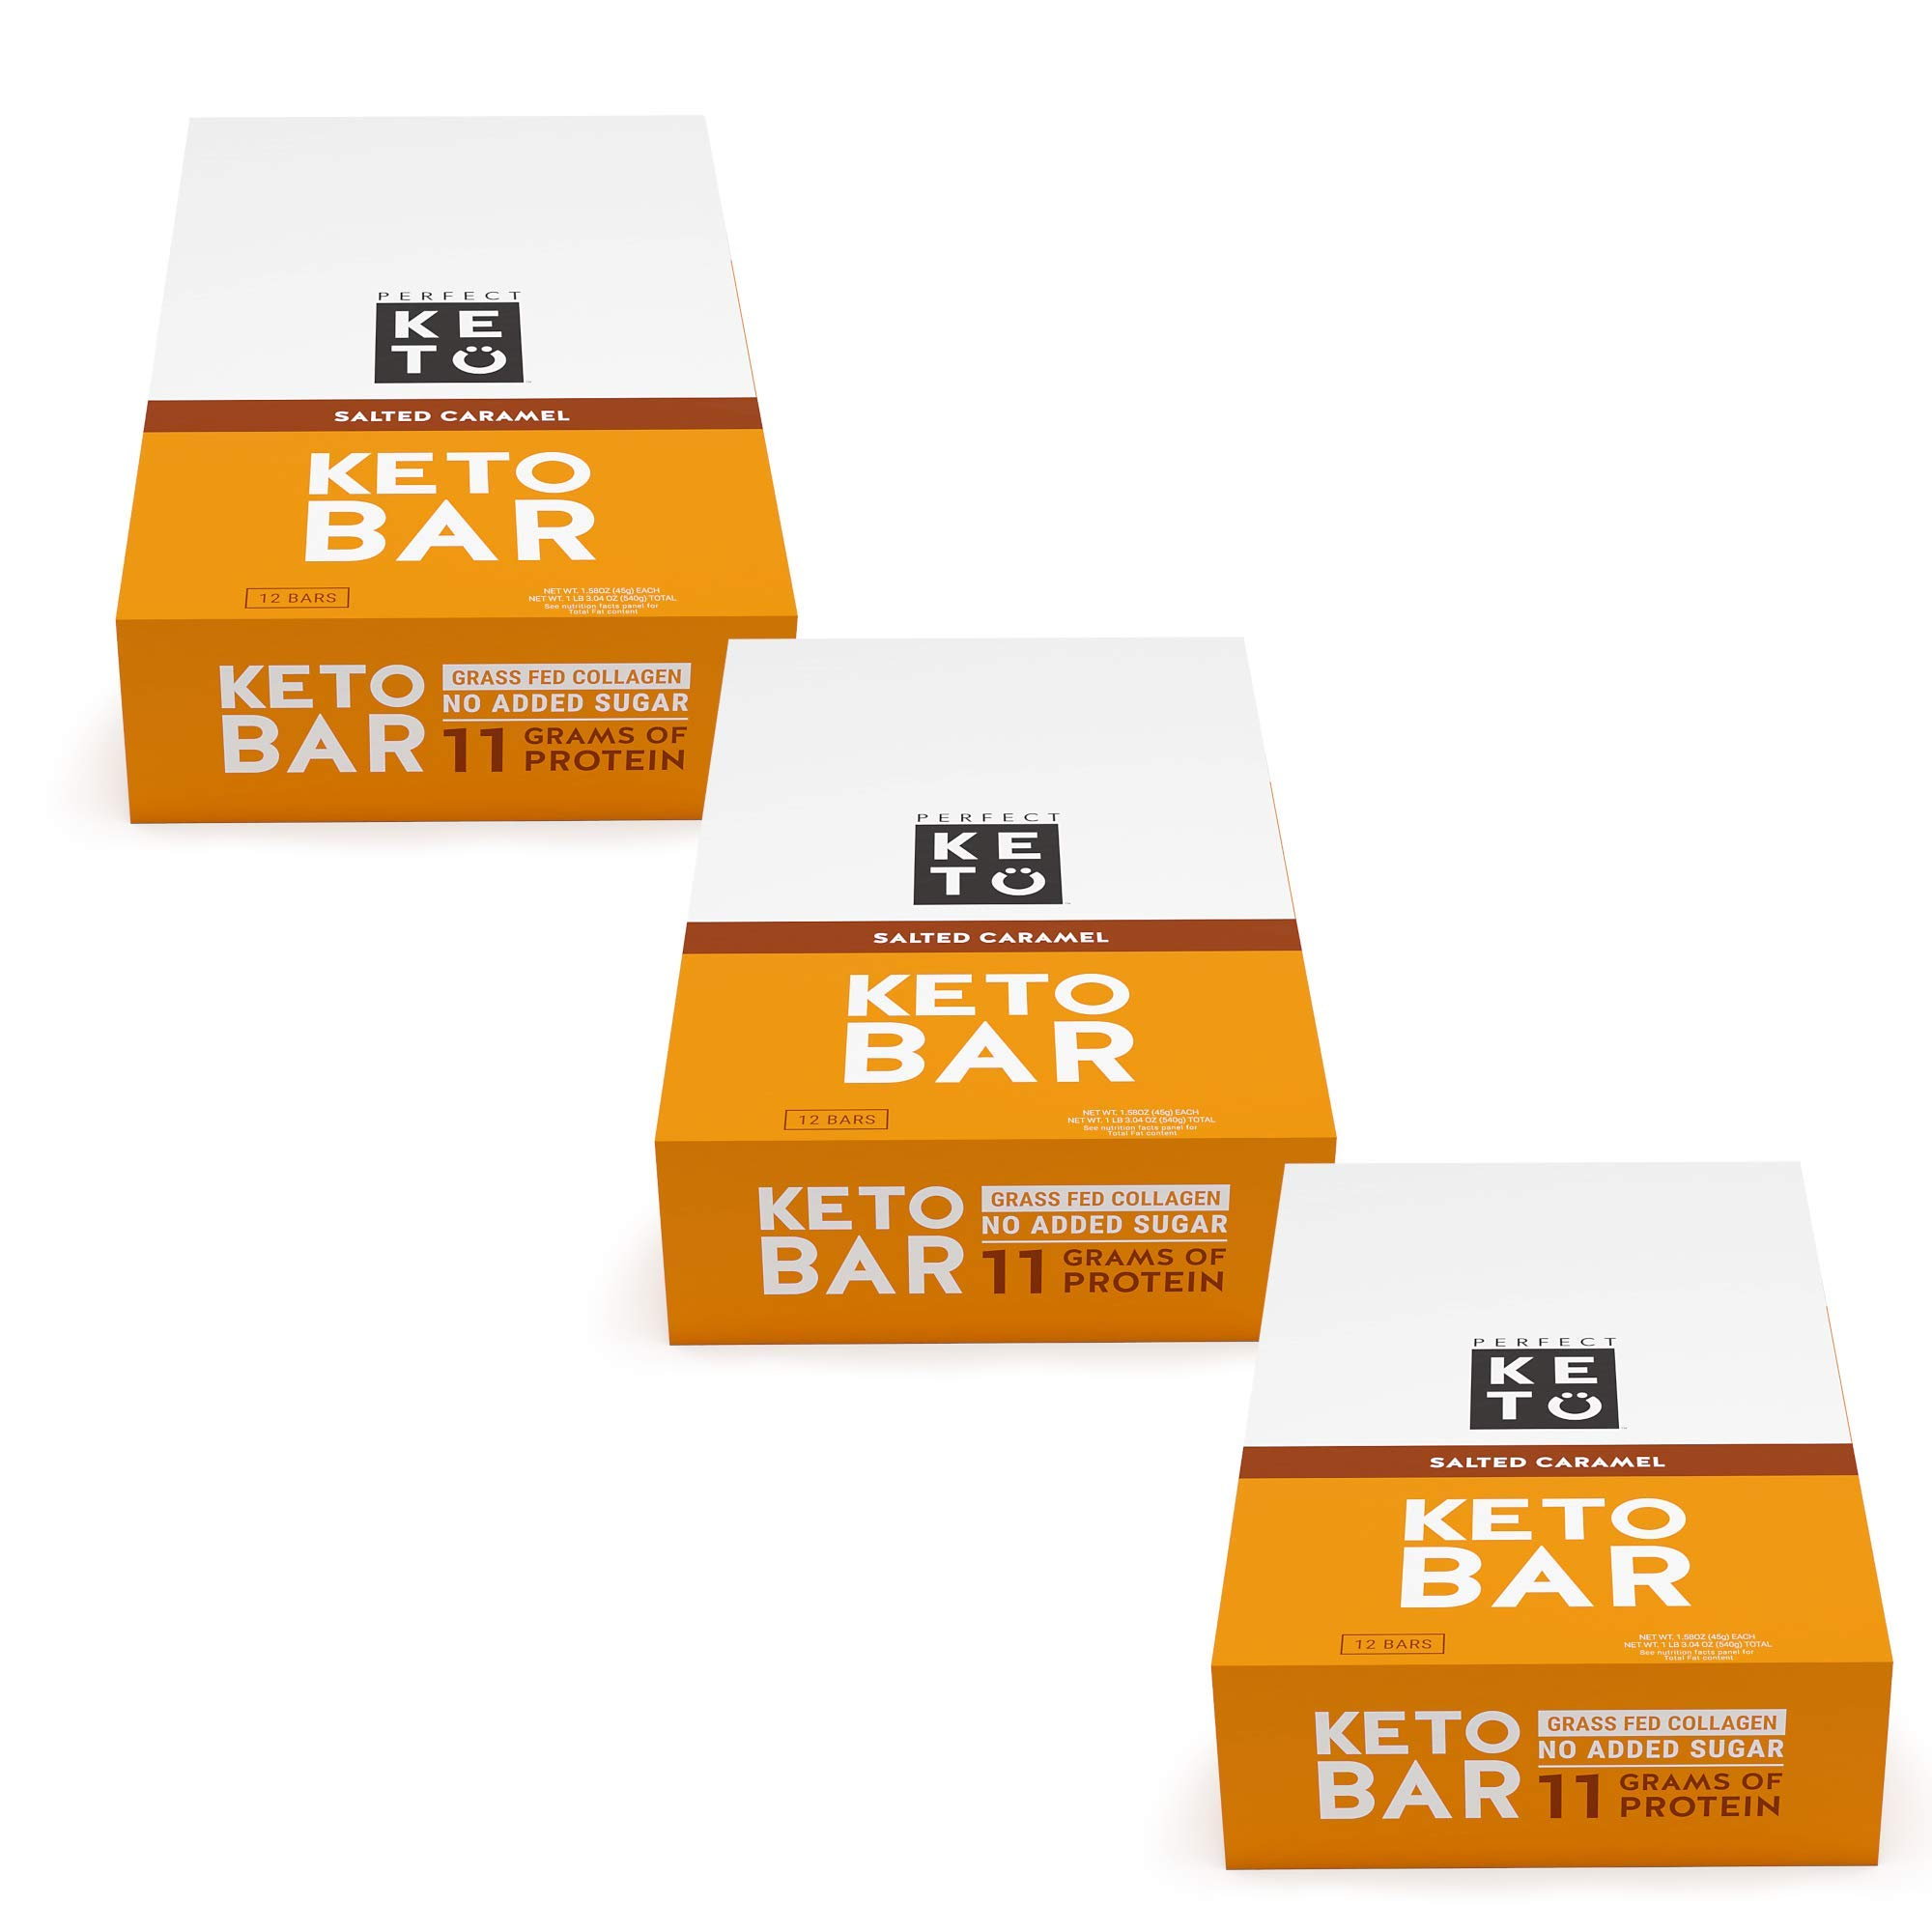 New! Perfect Keto Bar, Keto Snack (12 Count), No Added Sugar. 10g of Protein, Coconut Oil, and Collagen, with a Touch of Sea Salt and Stevia. (3 Boxes, Salted Caramel)